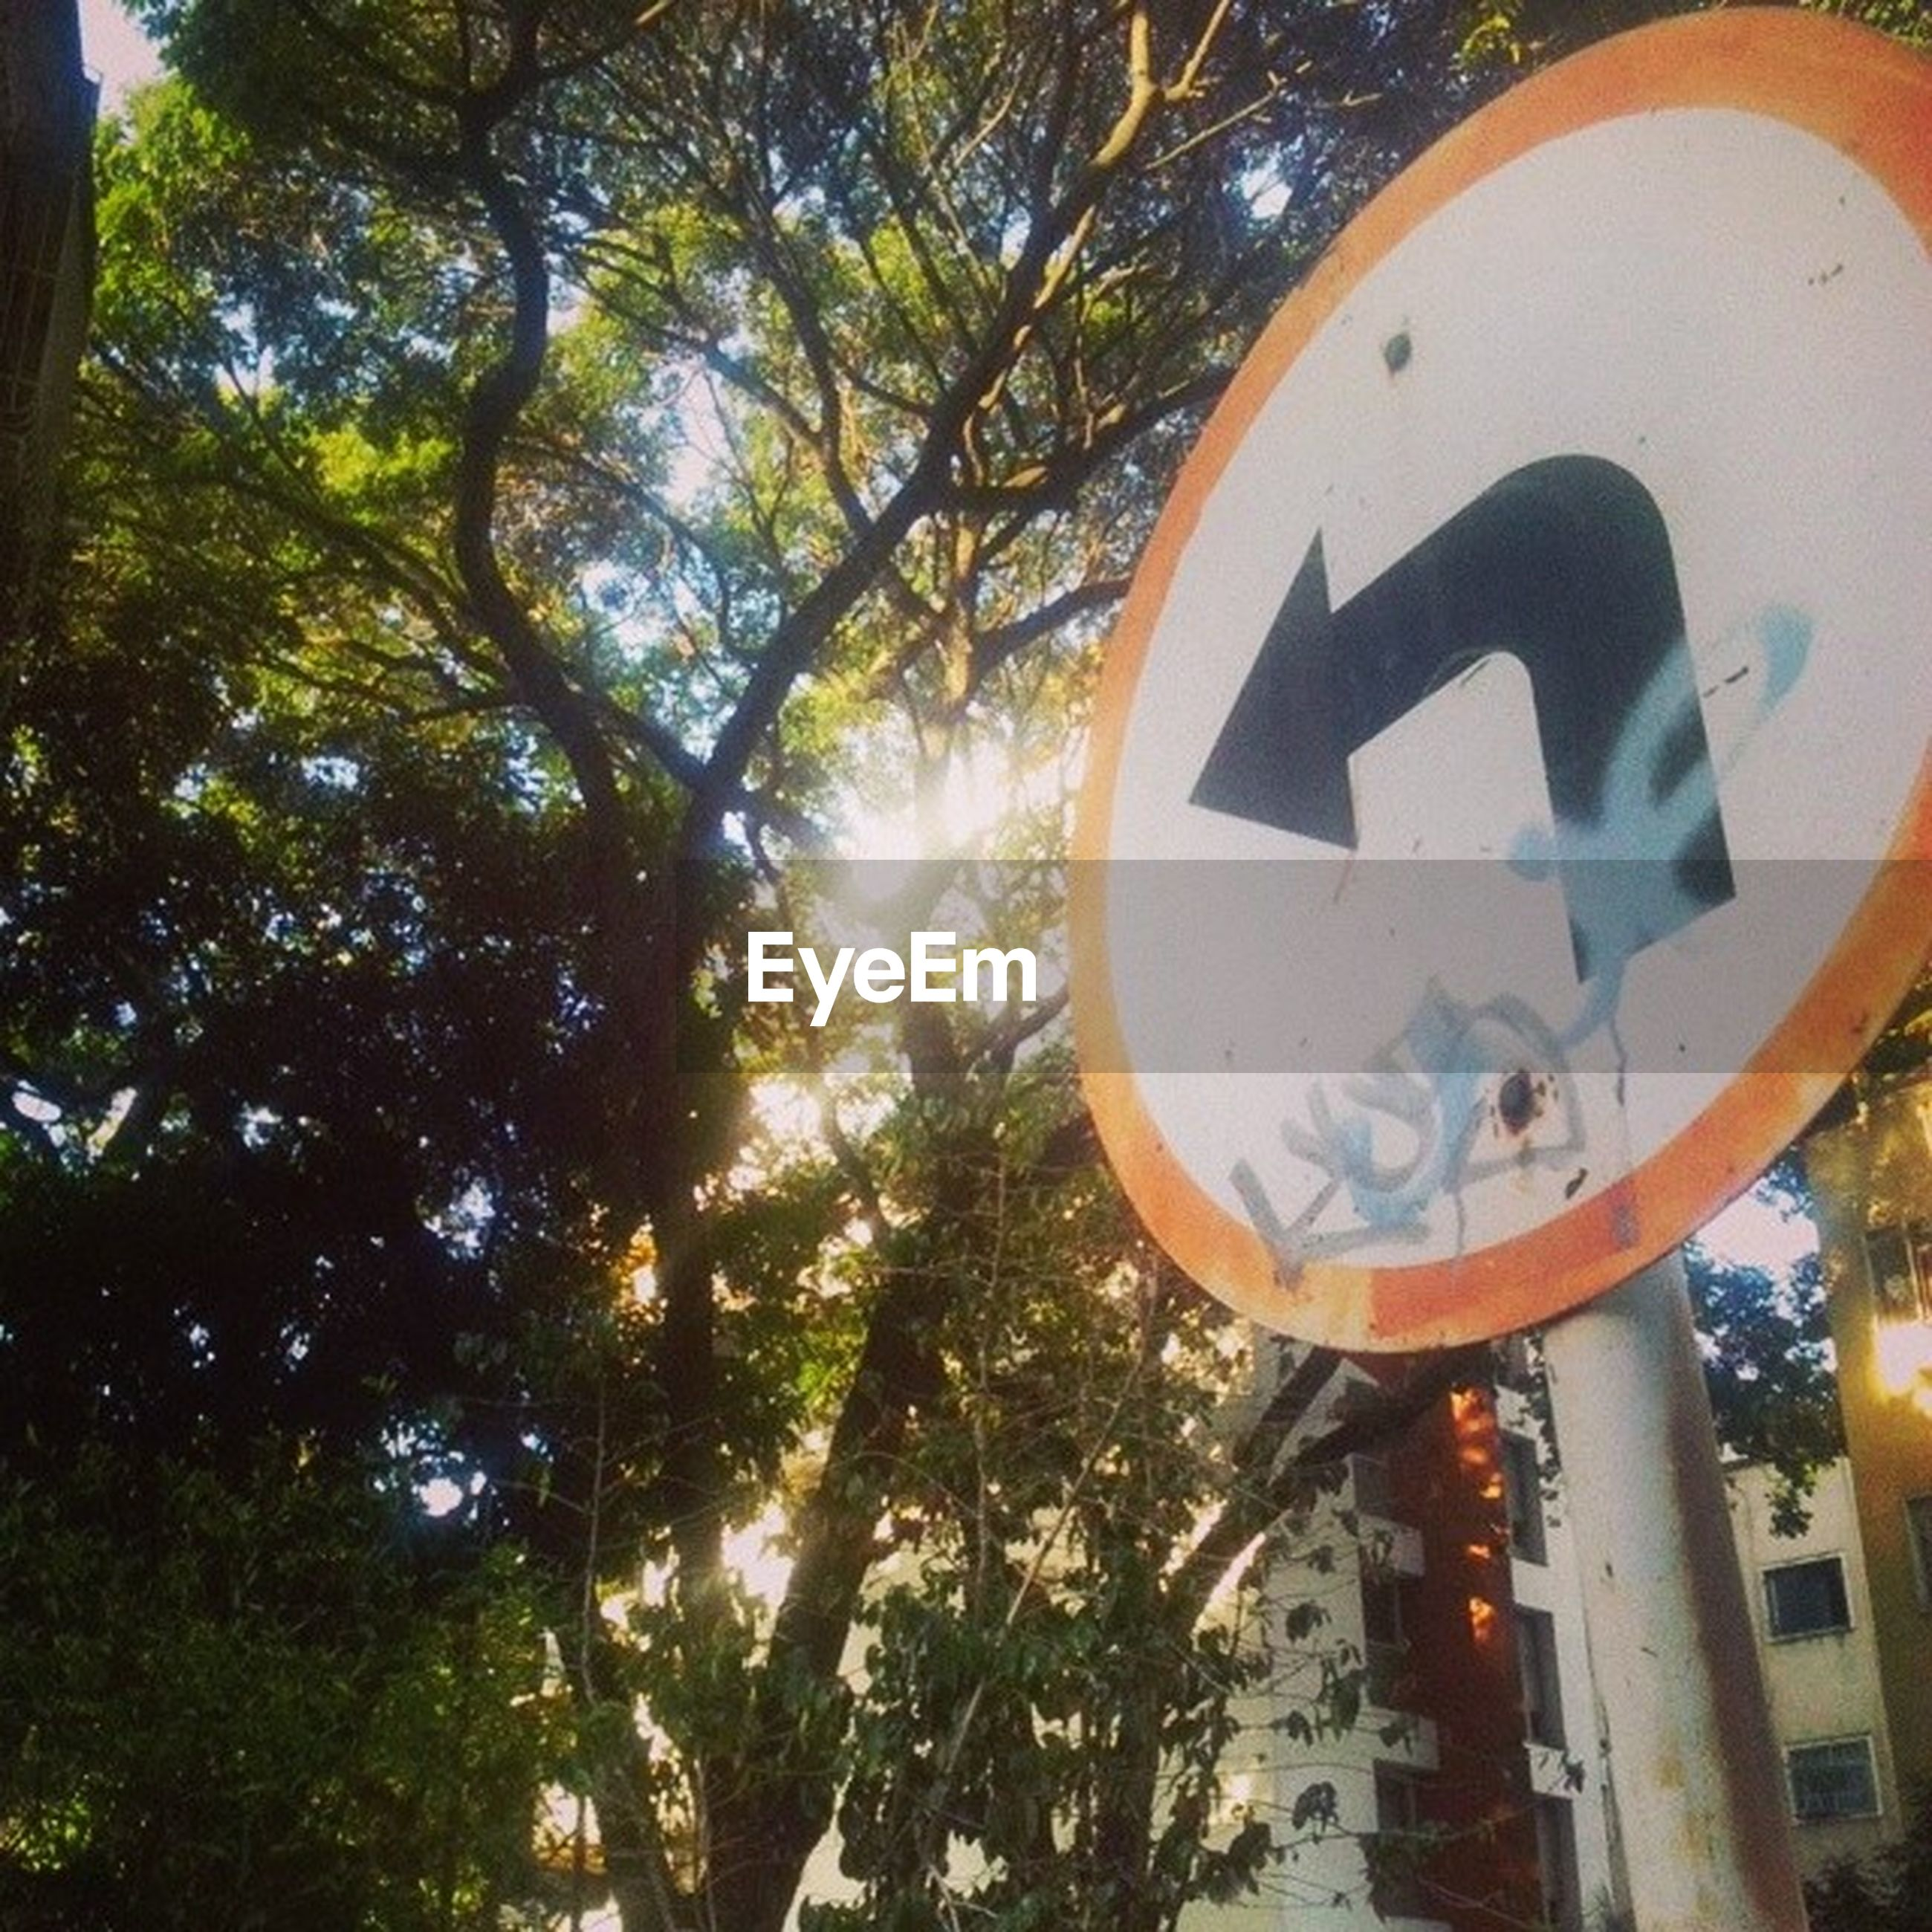 tree, low angle view, communication, text, circle, sky, road sign, sign, built structure, growth, outdoors, western script, day, no people, information sign, lighting equipment, architecture, branch, street light, illuminated